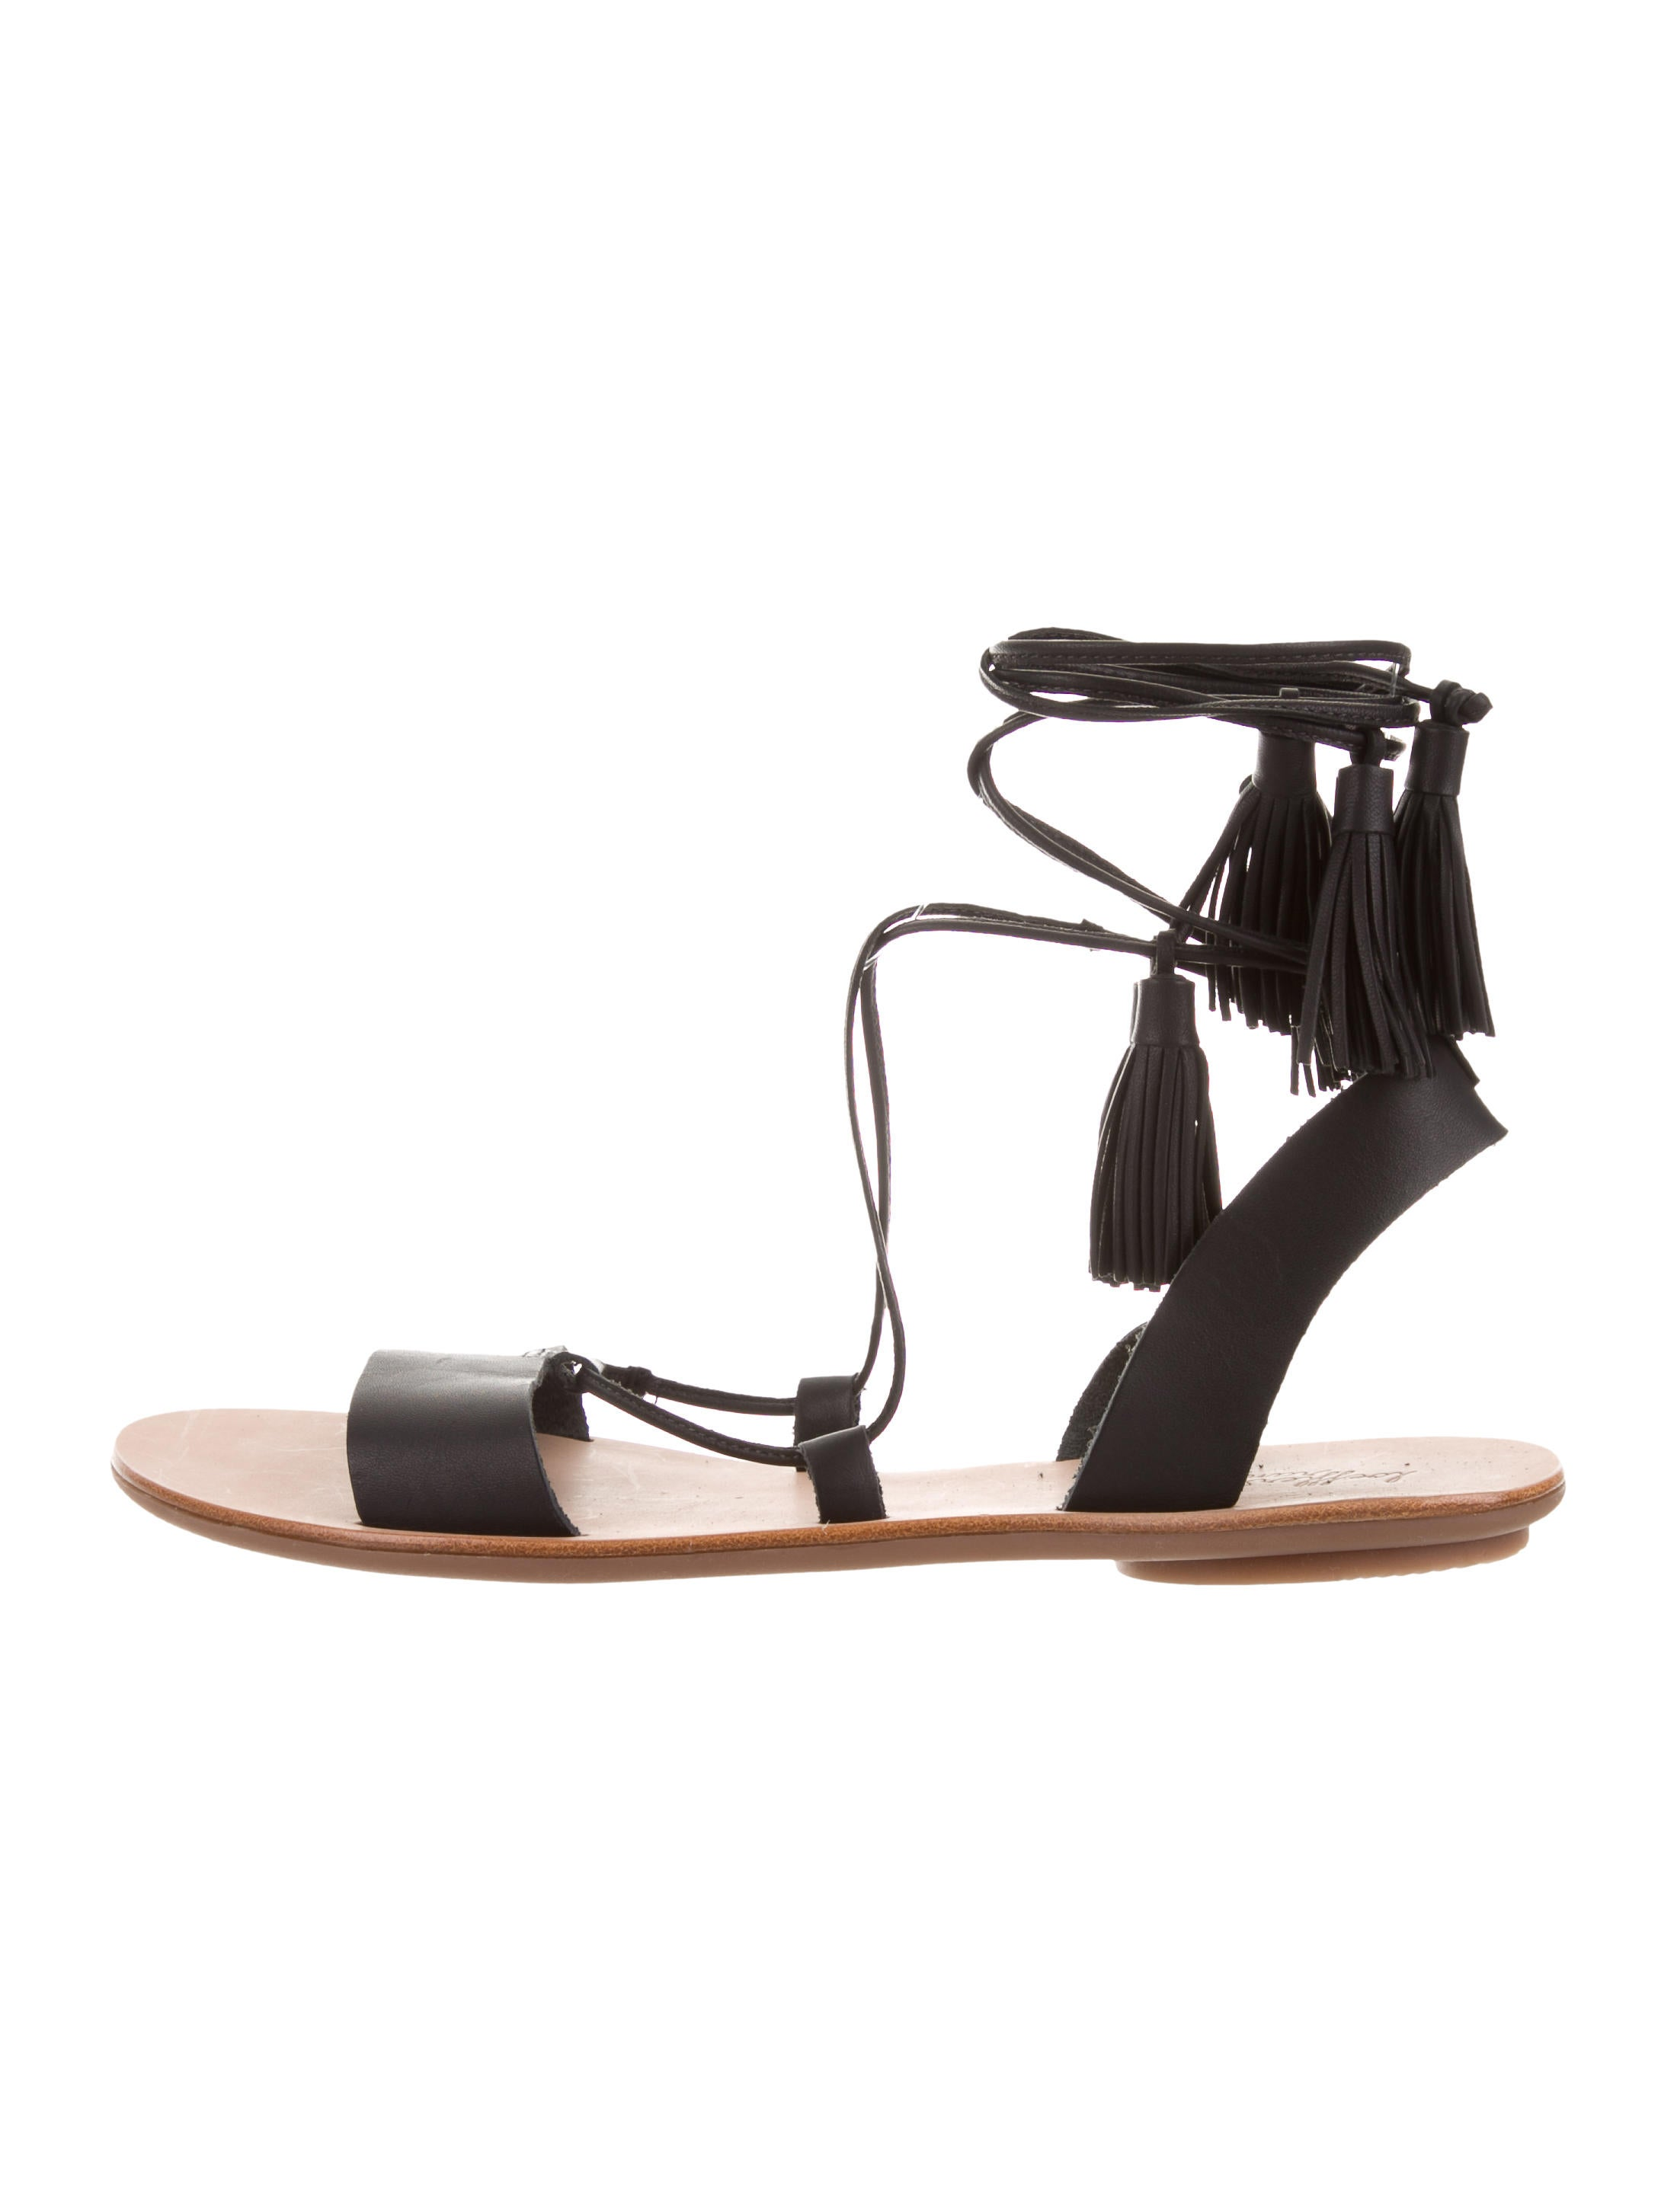 Loeffler Randall Saffron Wrap-Around Sandals w/ Tags